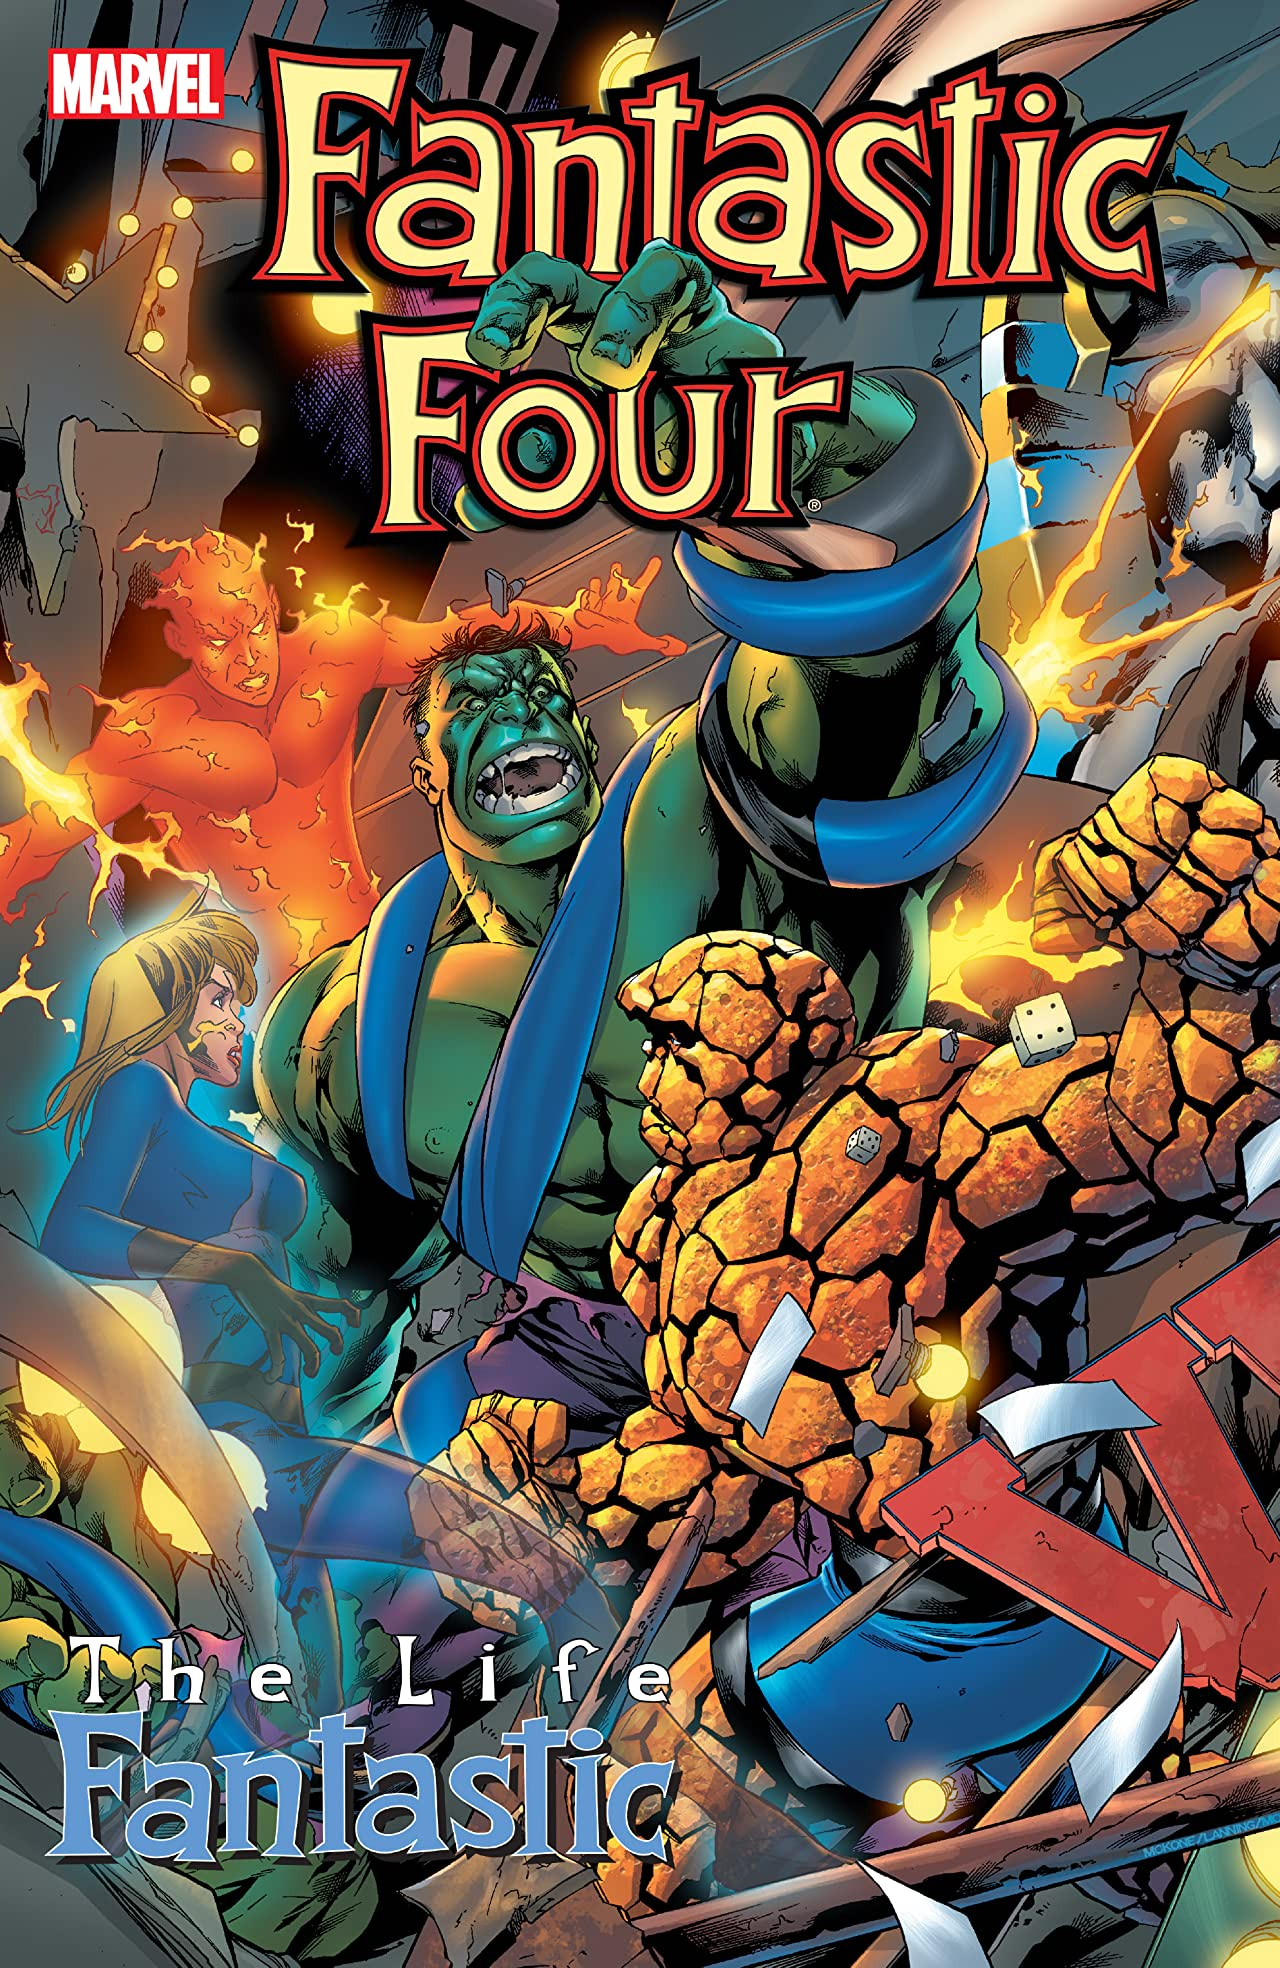 Fantastic Four: The Life Fantastic